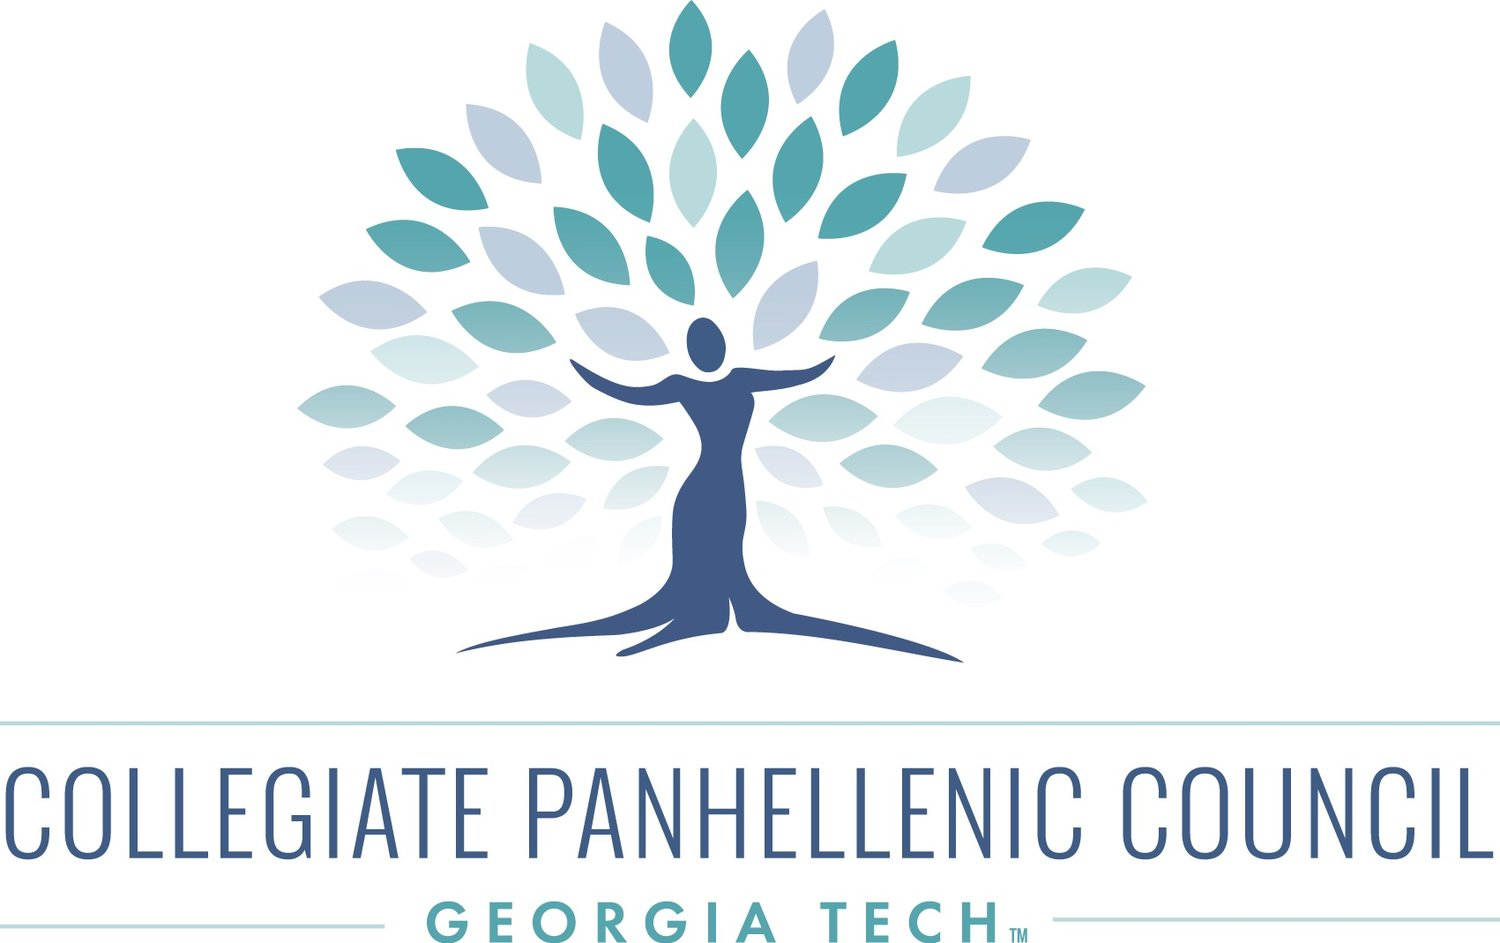 Georgia Tech Collegiate Panhellenic Council